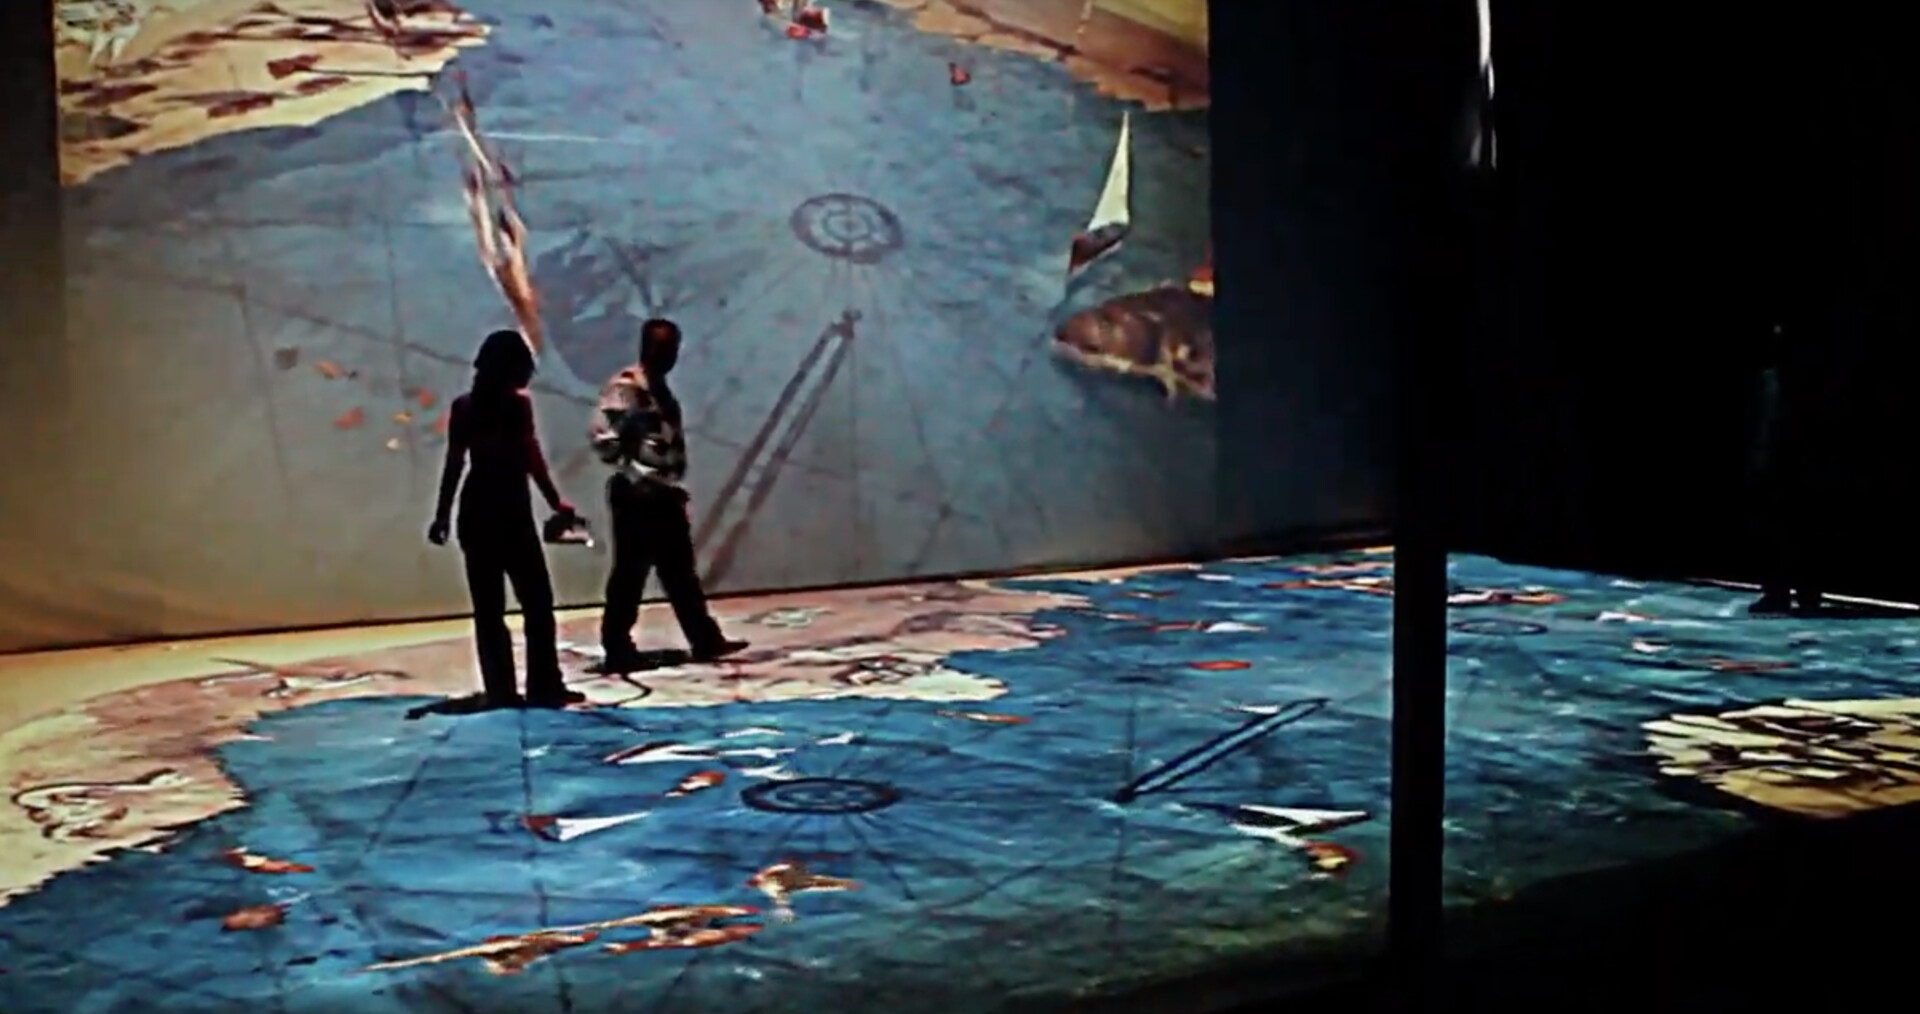 Piri Reis and His Maps Exhibition at Beşiktaş Naval Museum 2013, 80 m² Interactive Projection installation